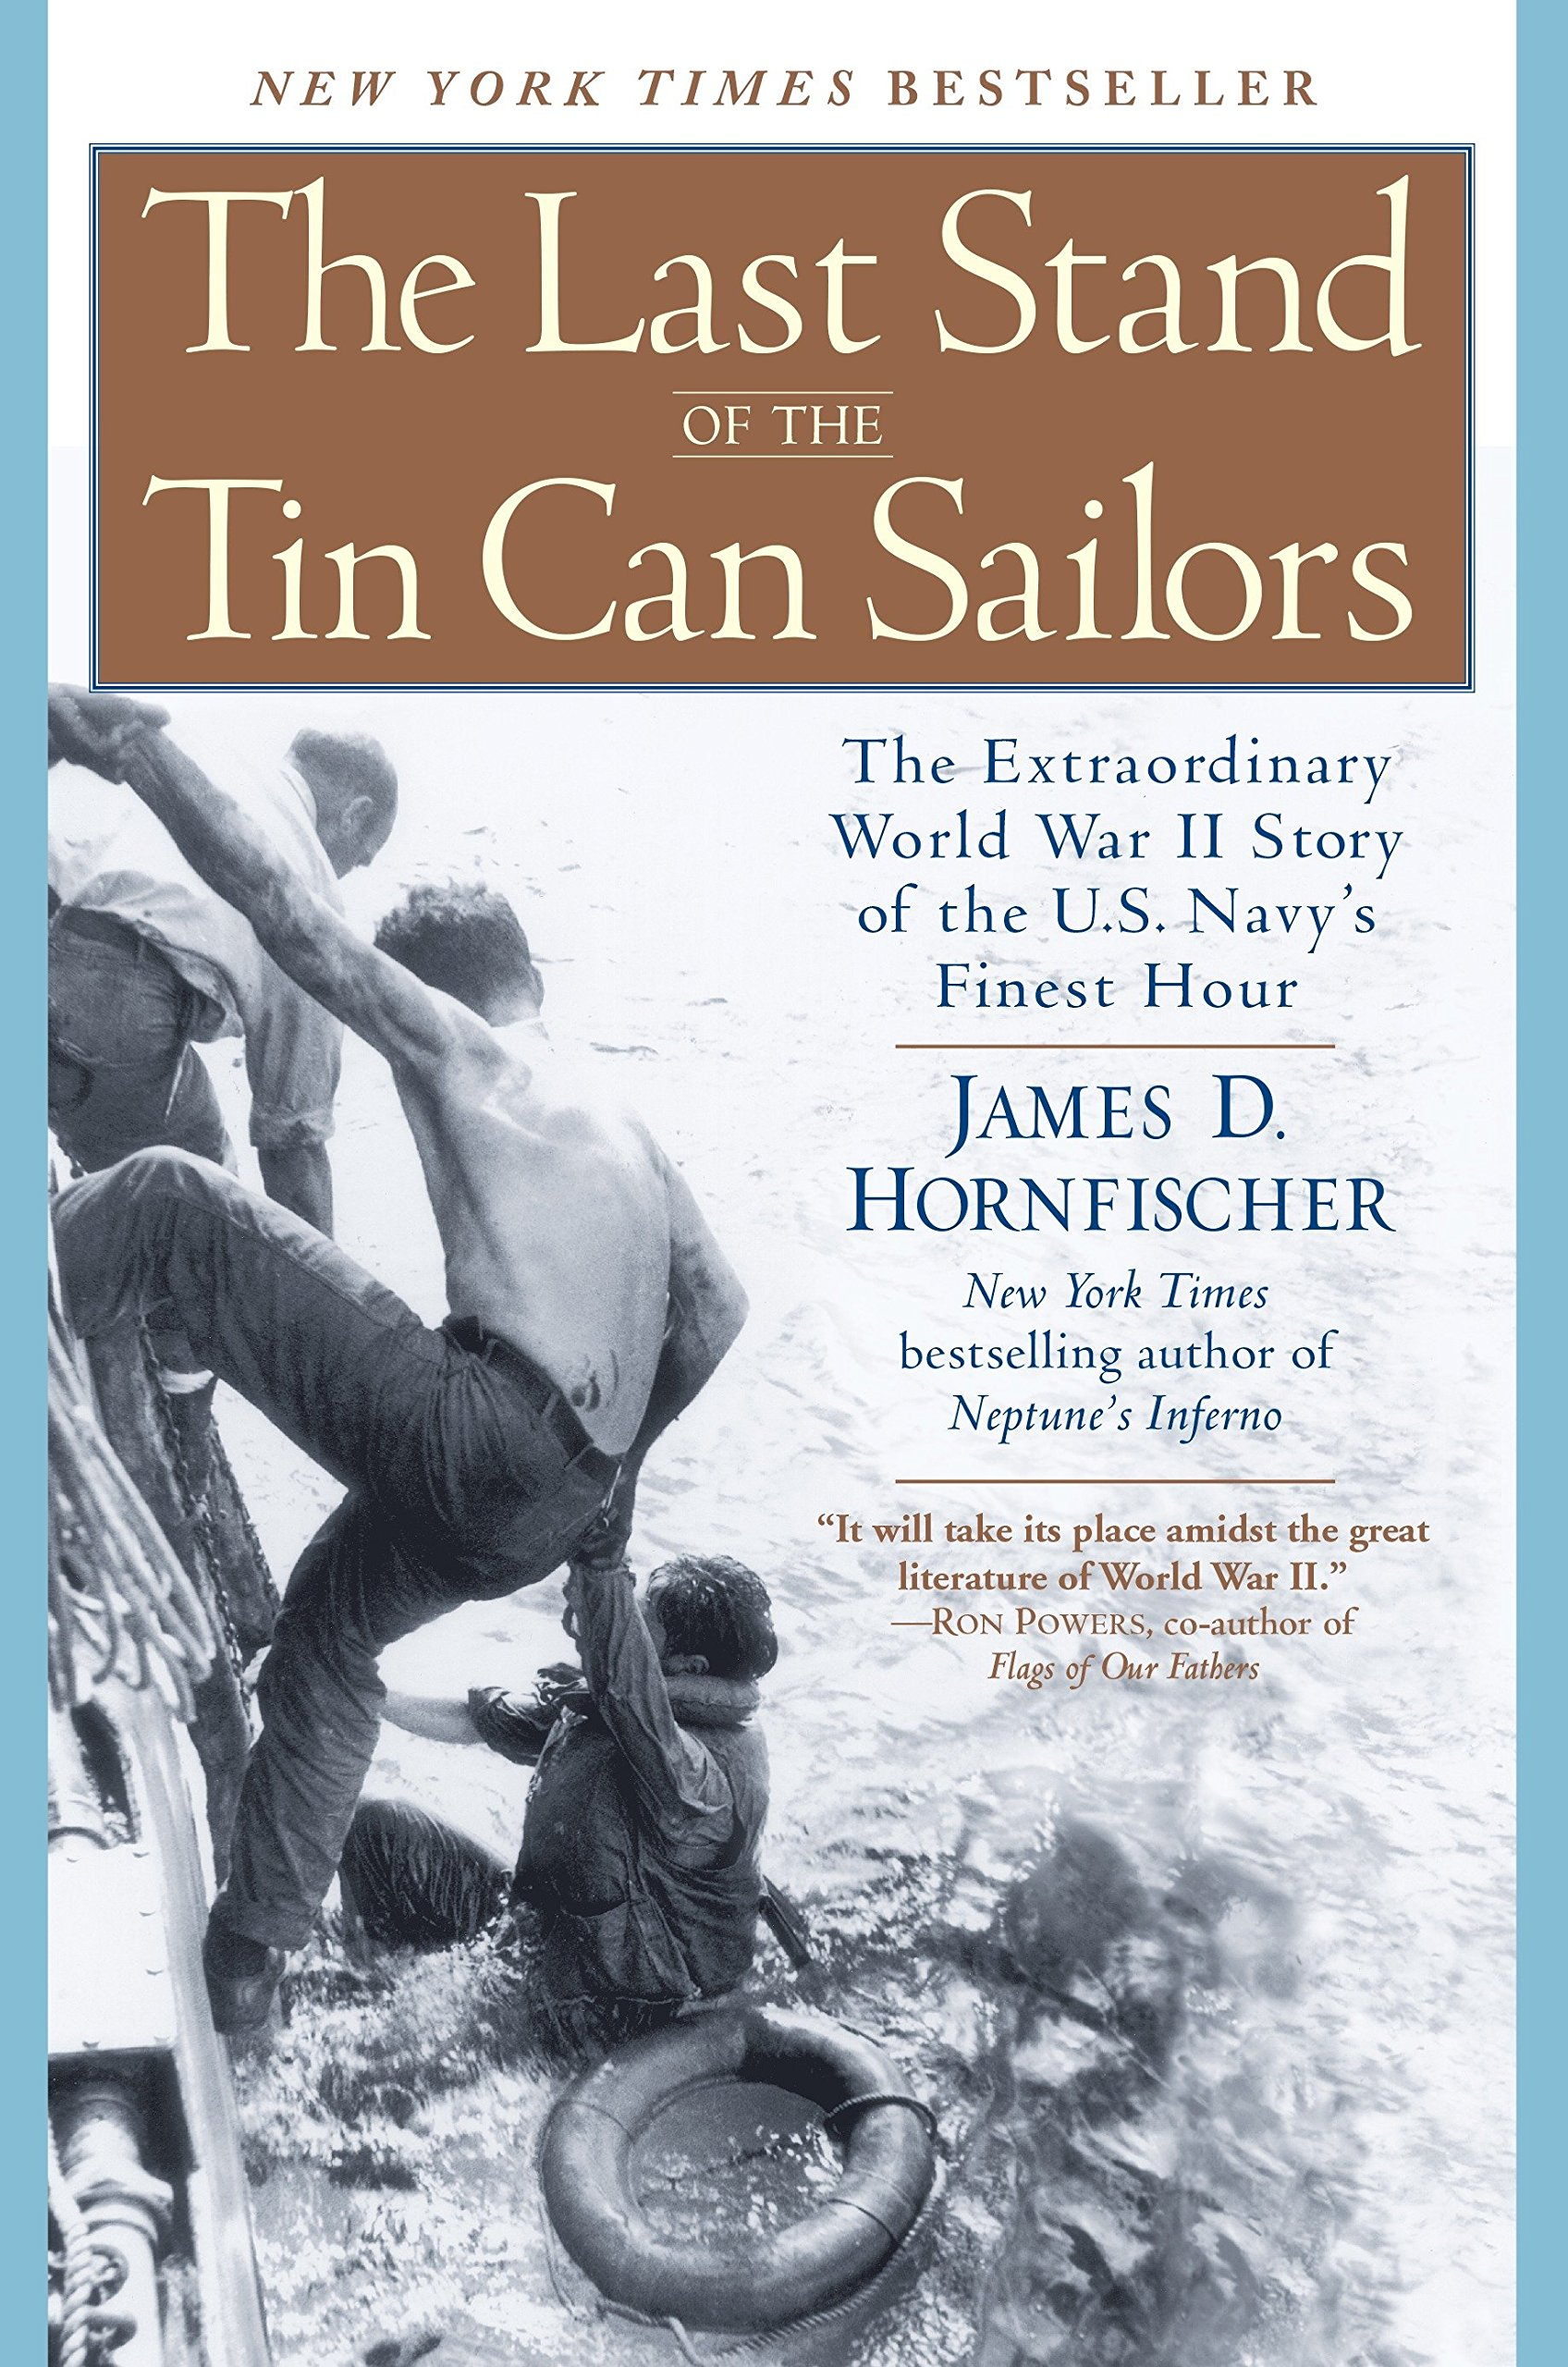 The Last Stand of the Tin Can Sailors: The Extraordinary World War II Story  of the U.S. Navy's Finest Hour: James D. Hornfischer: 9780553381481:  Amazon.com: ...